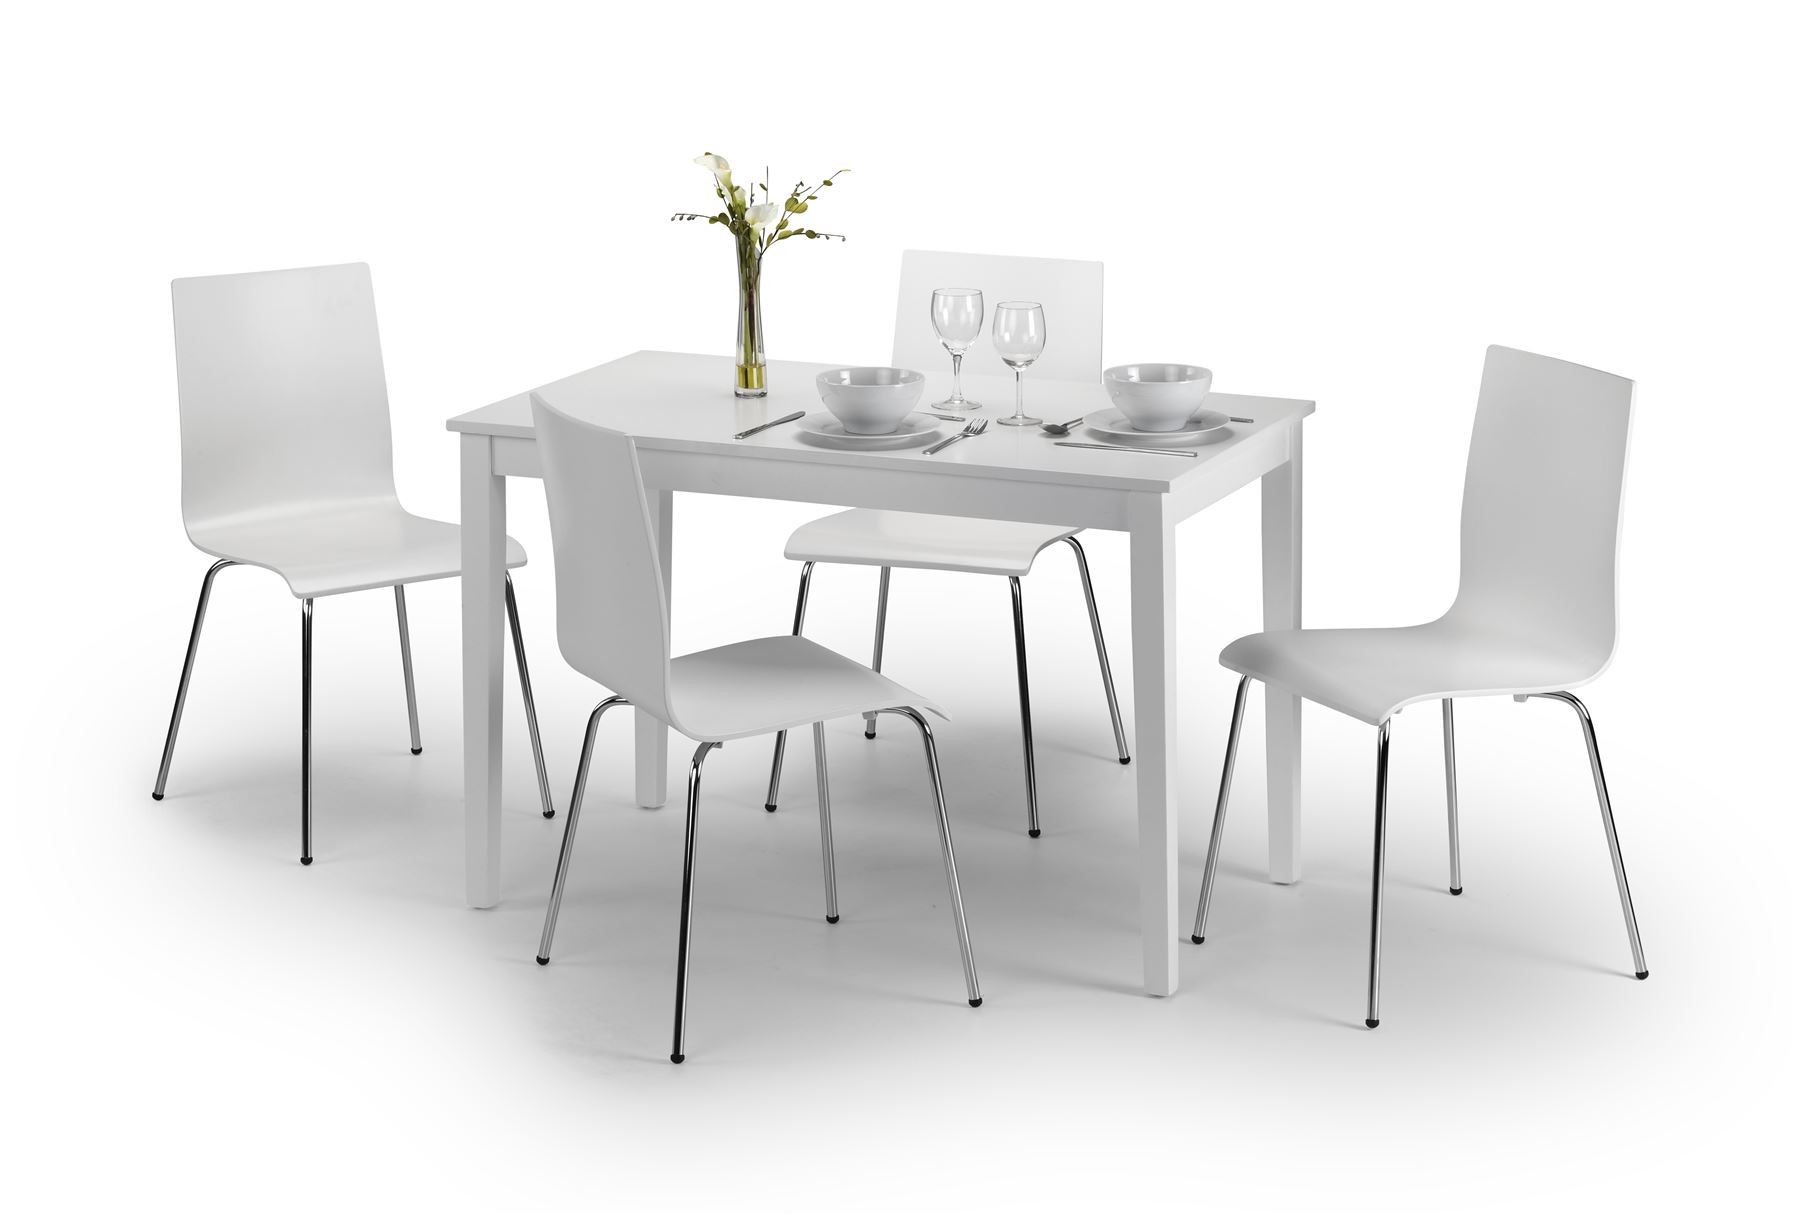 Julian Bowen Taku White Dining Table & 4 Wood Mandy Chairs with Metal Legs